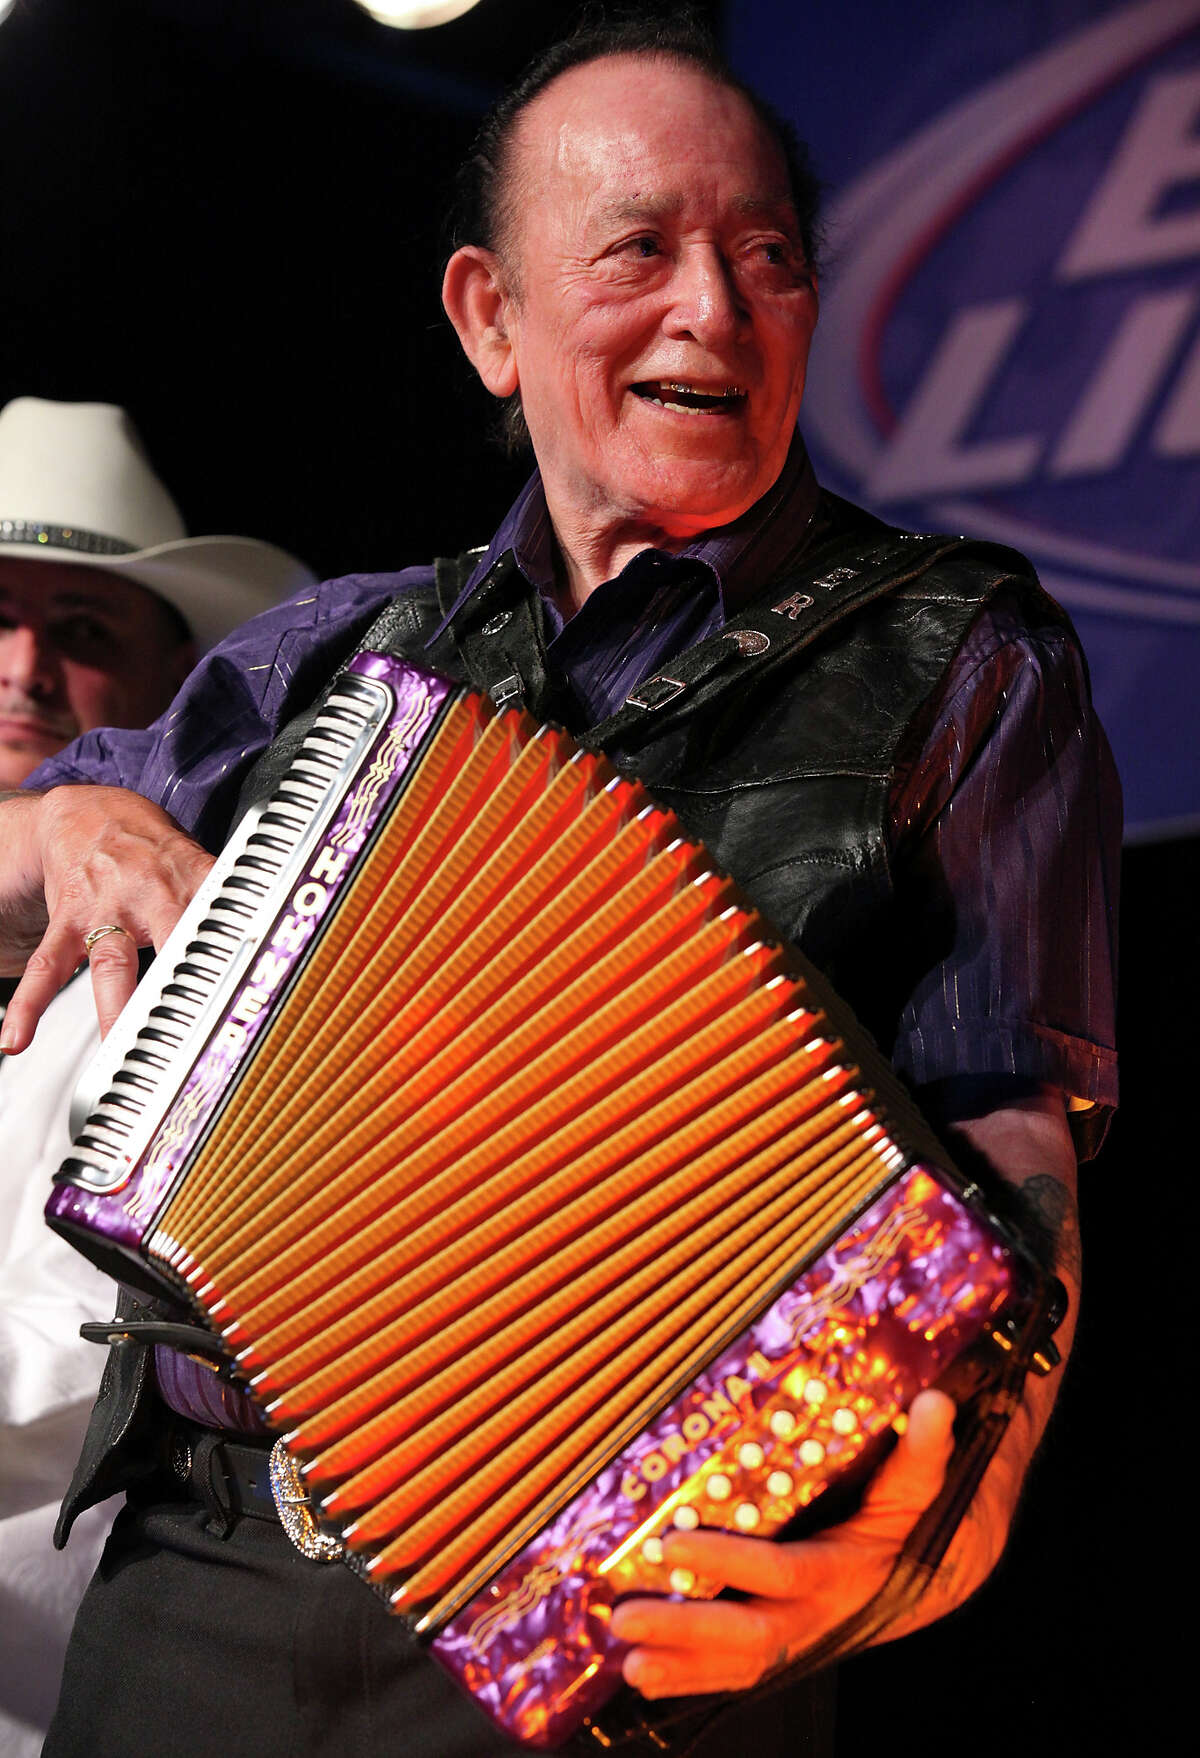 A recipient of the National Endowment for the Arts 2012 National Heritage Fellowship, Flaco Jimenez will be joining the pack onstage.